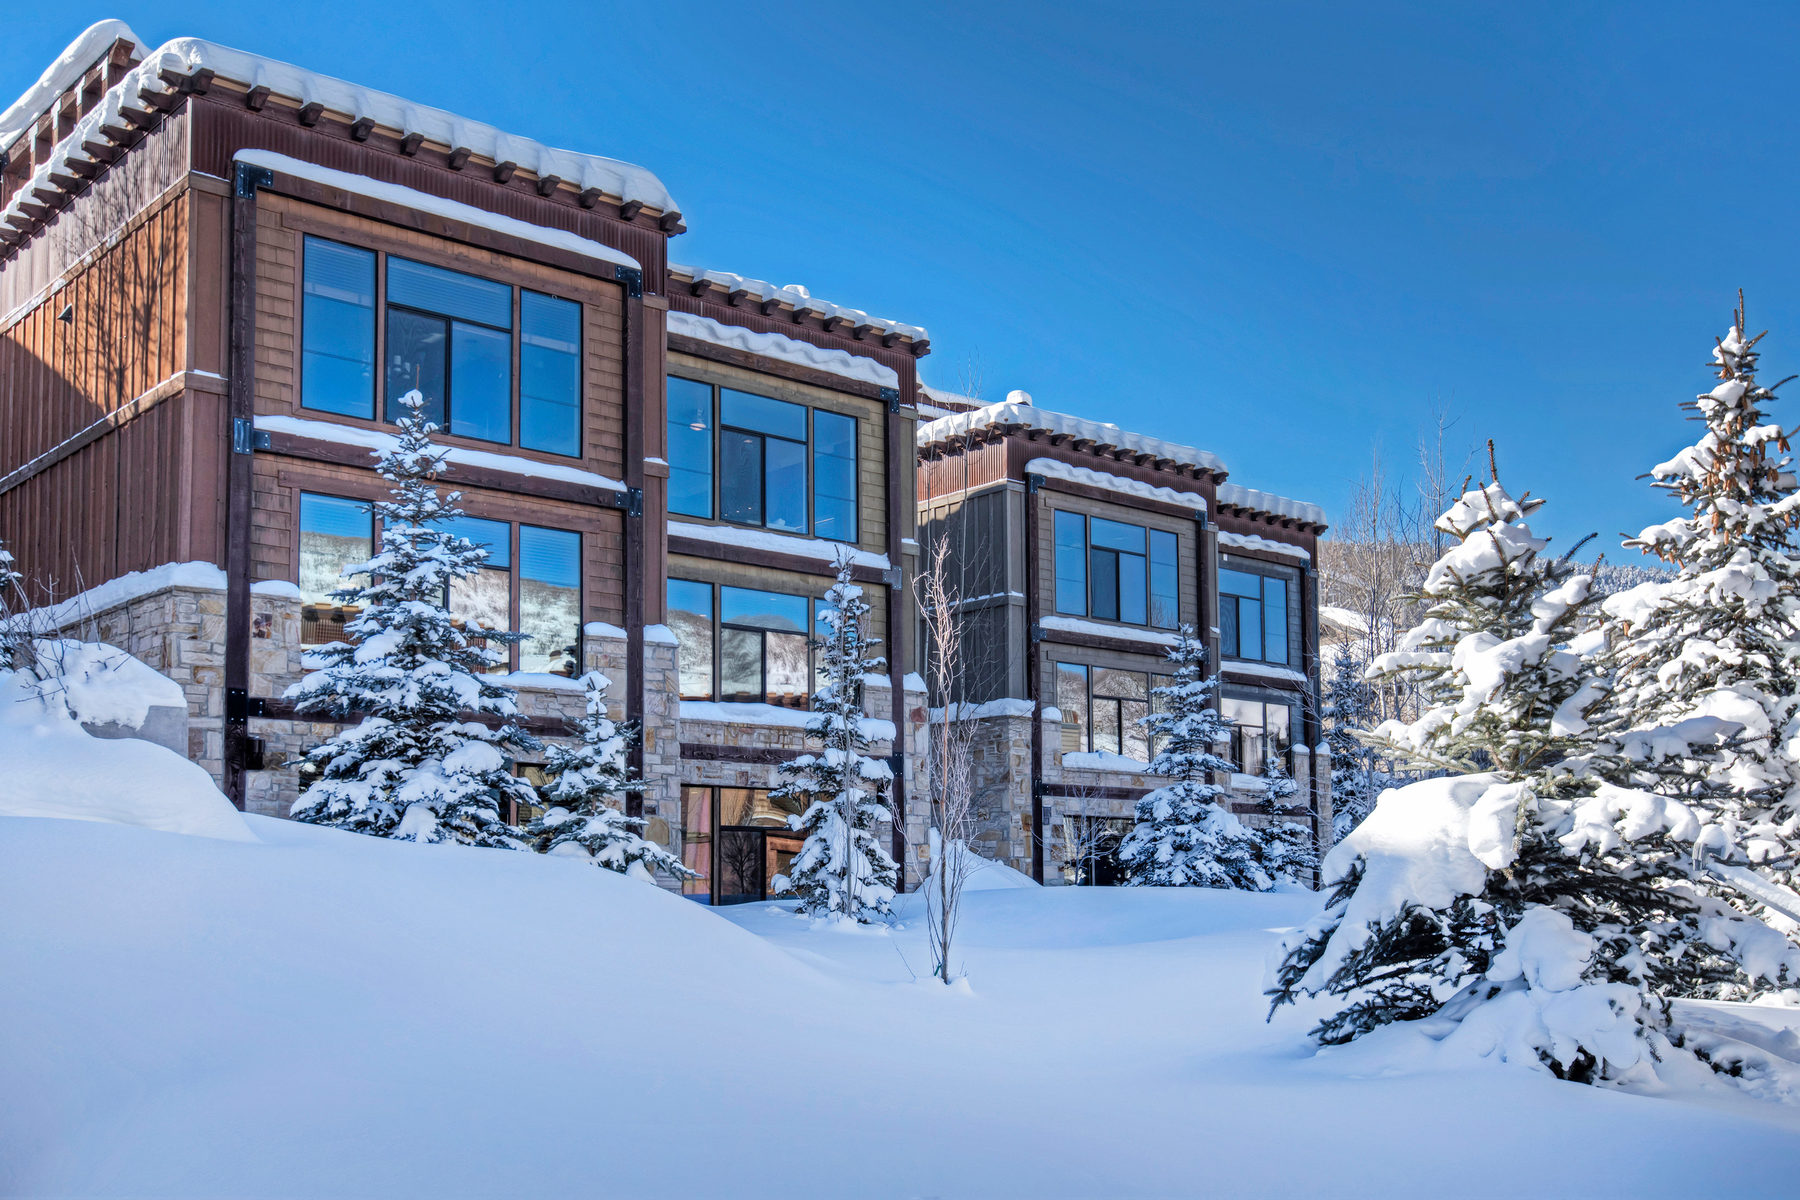 타운하우스 용 매매 에 Recently Remodeled Deer Valley Condo 569 Deer Valley Loop Rd #7 Park City, 유타, 84060 미국